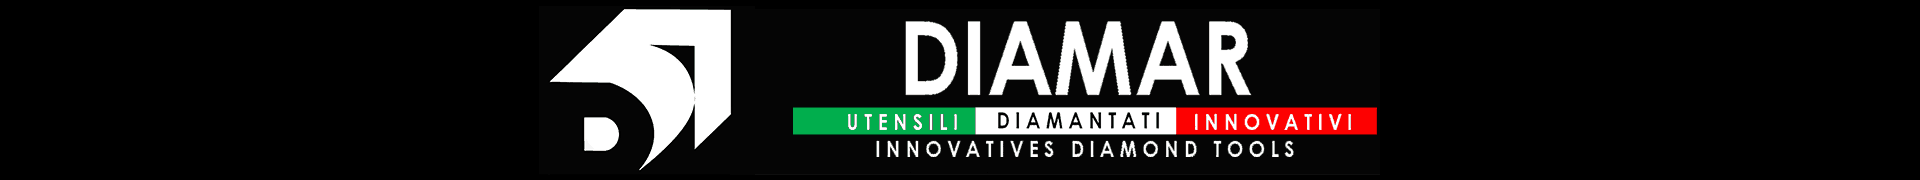 Diamar tools - Logo wide